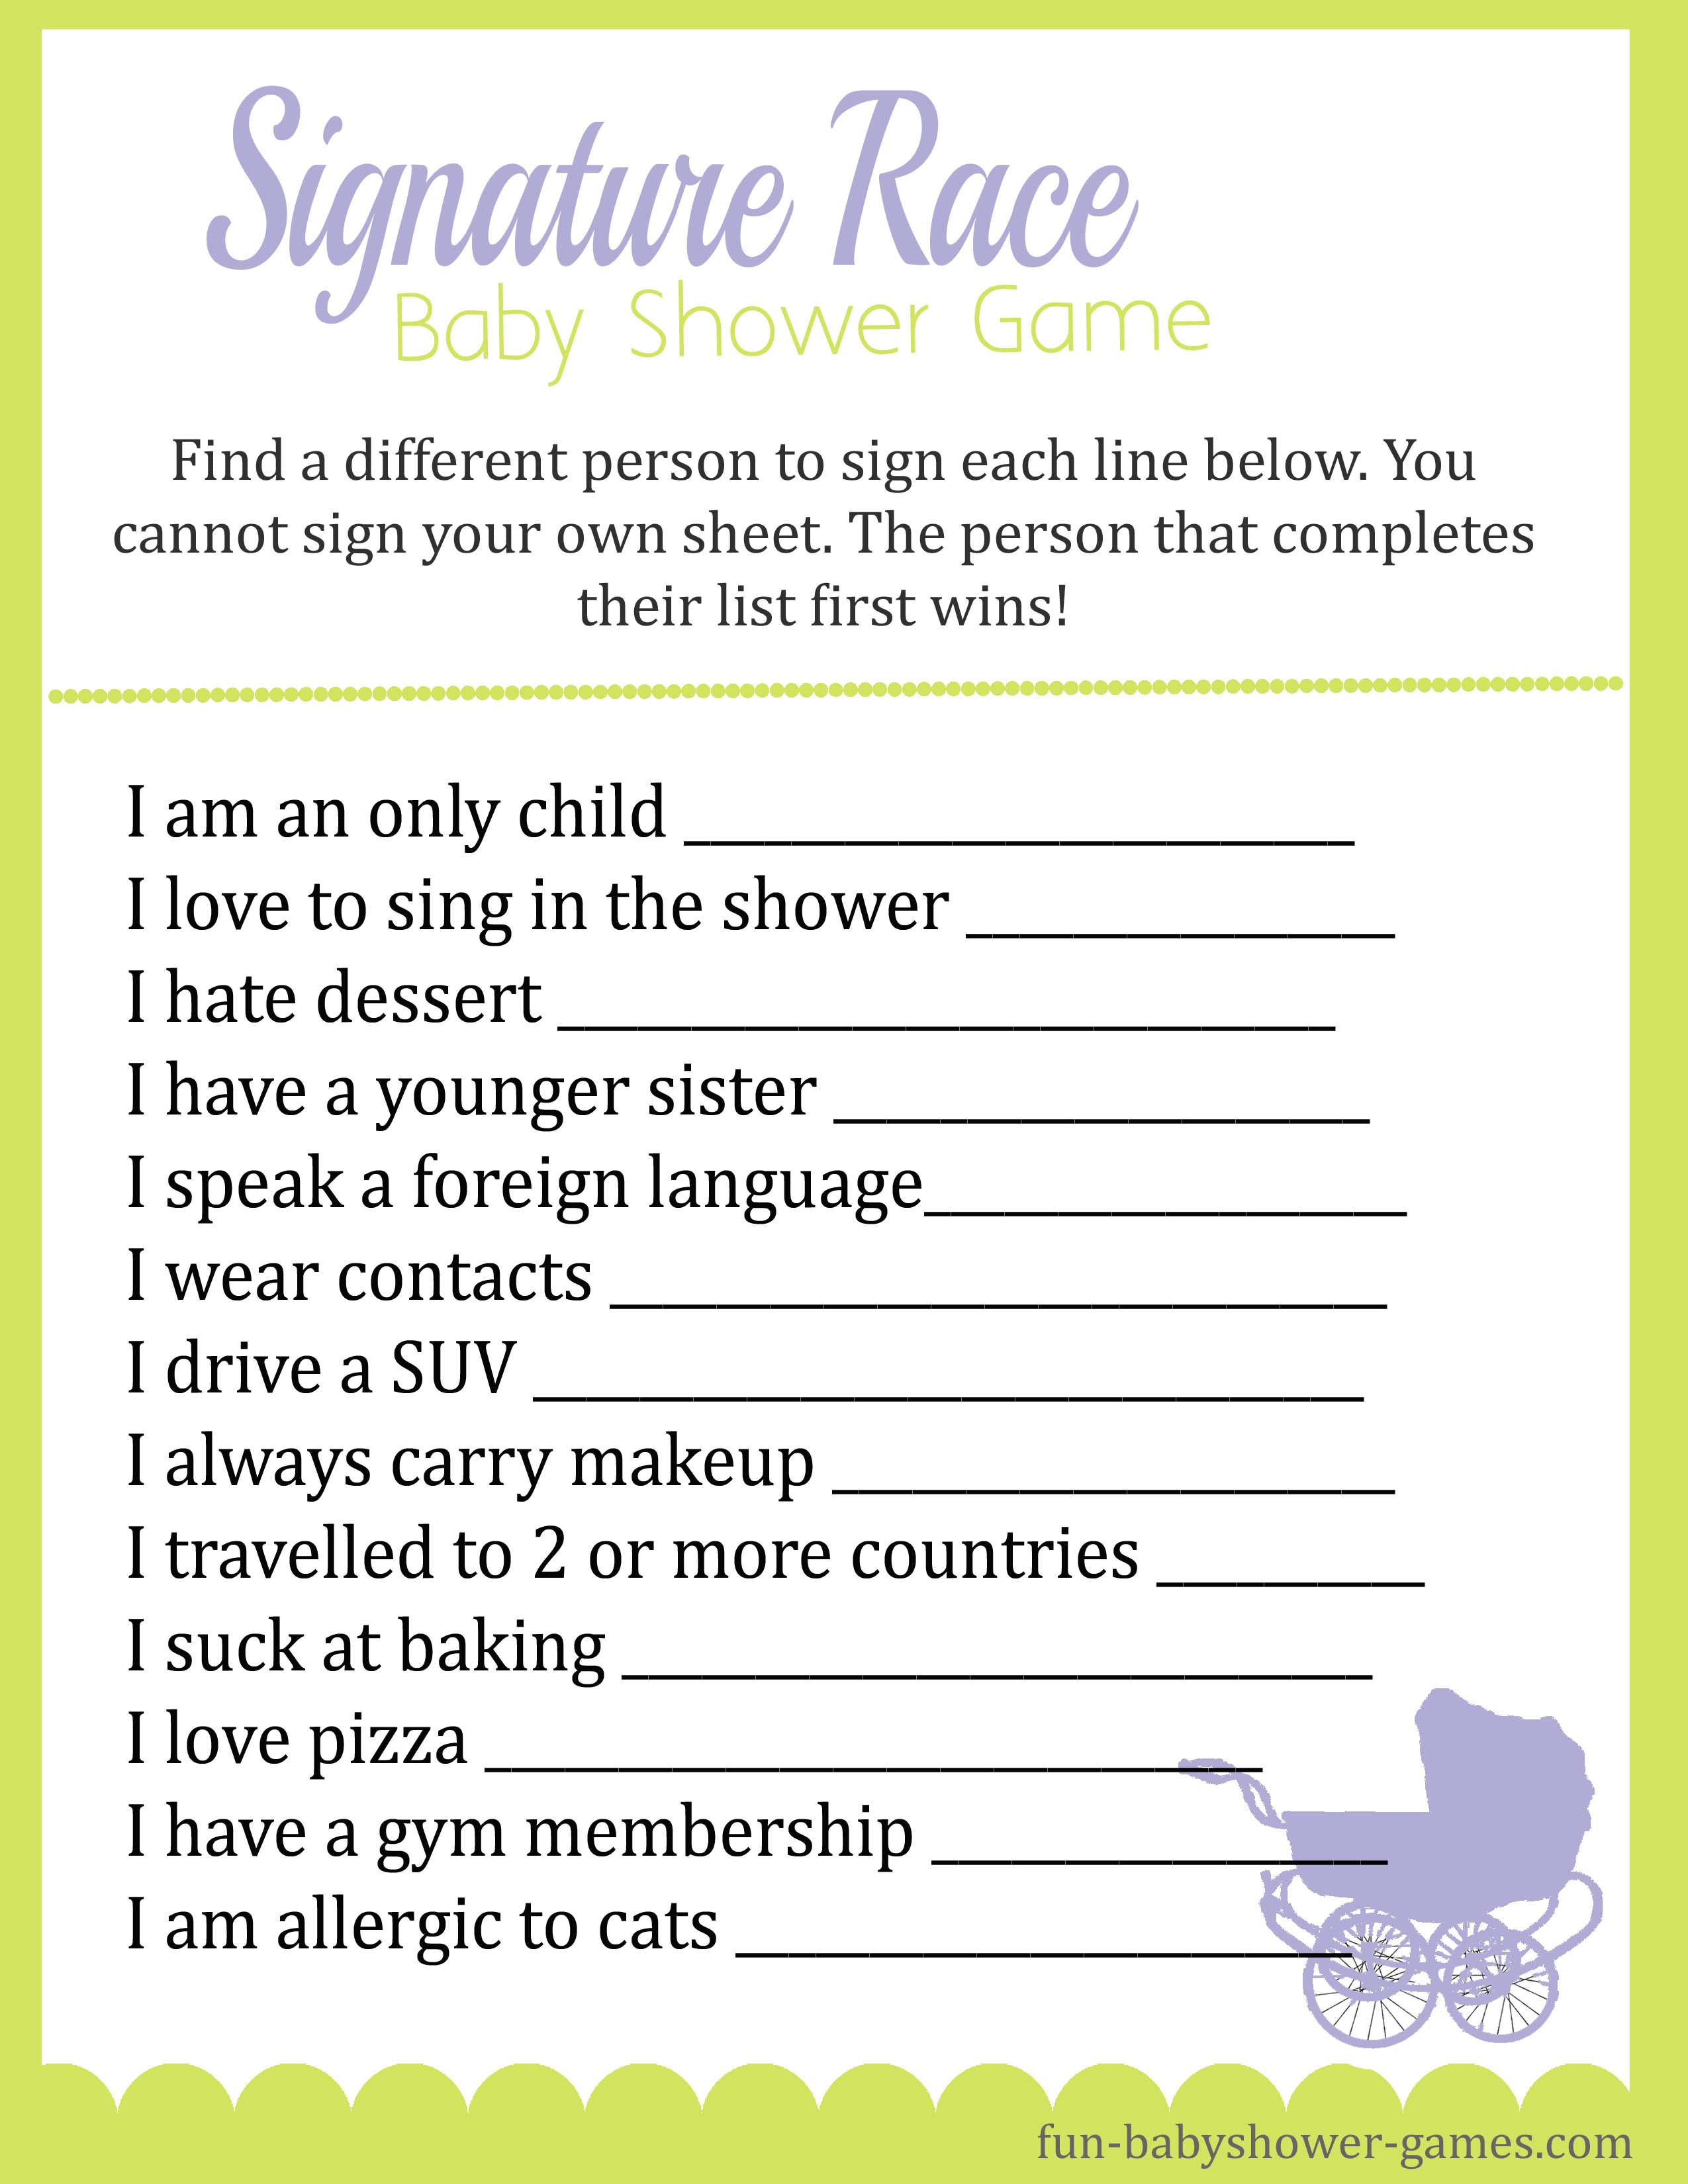 photo regarding Baby Shower Sign in Sheet Printable identify Youngster Shower Signature Race Recreation